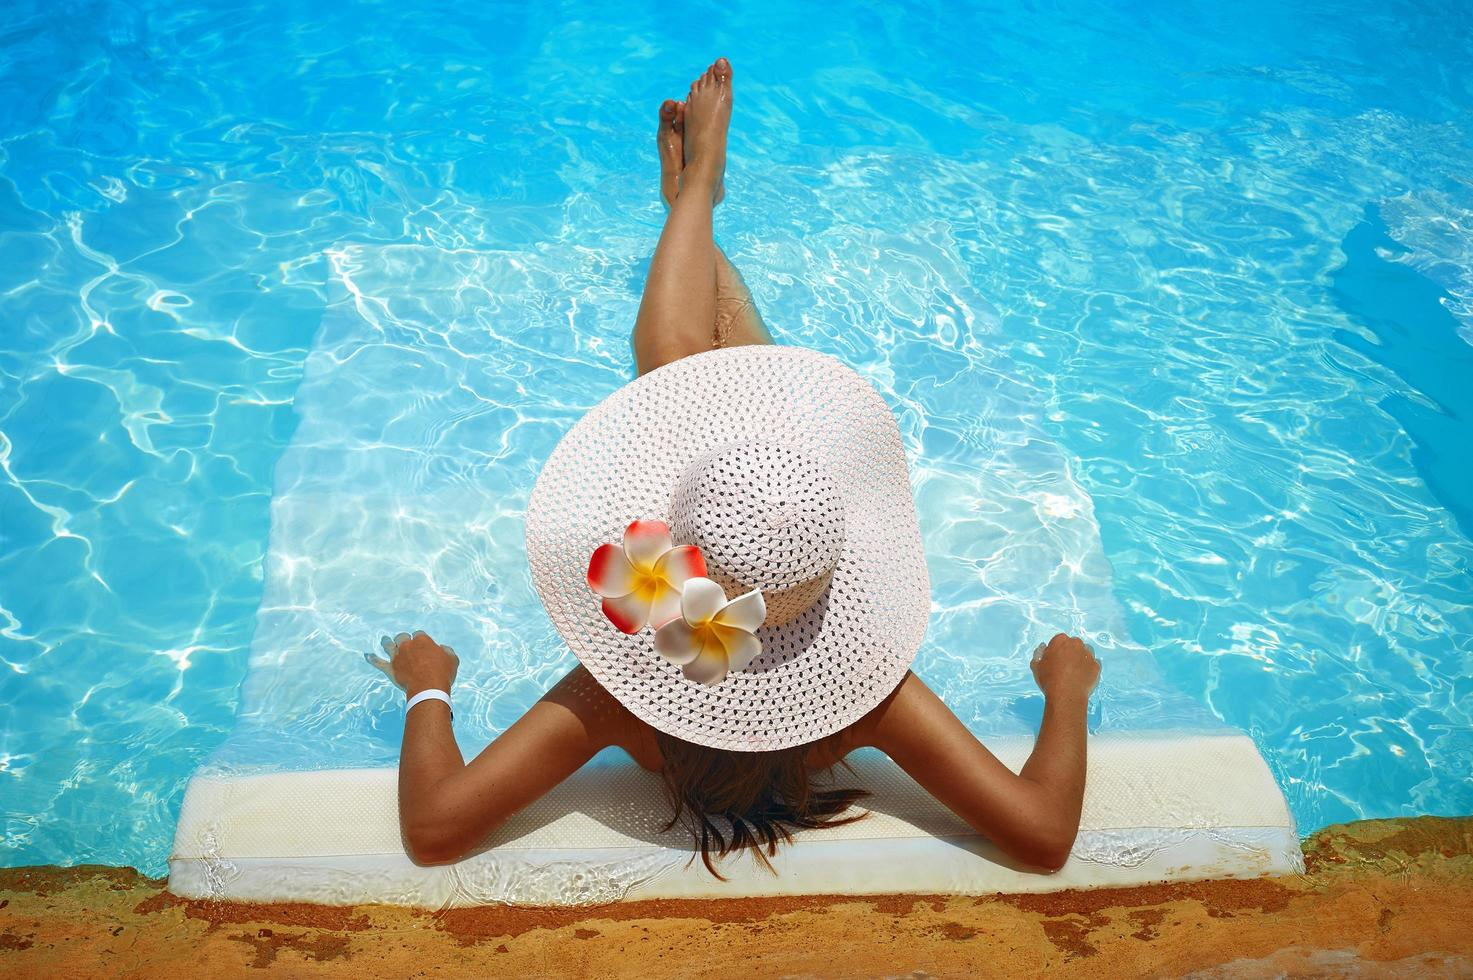 Woman in white hat lounging in pool photo